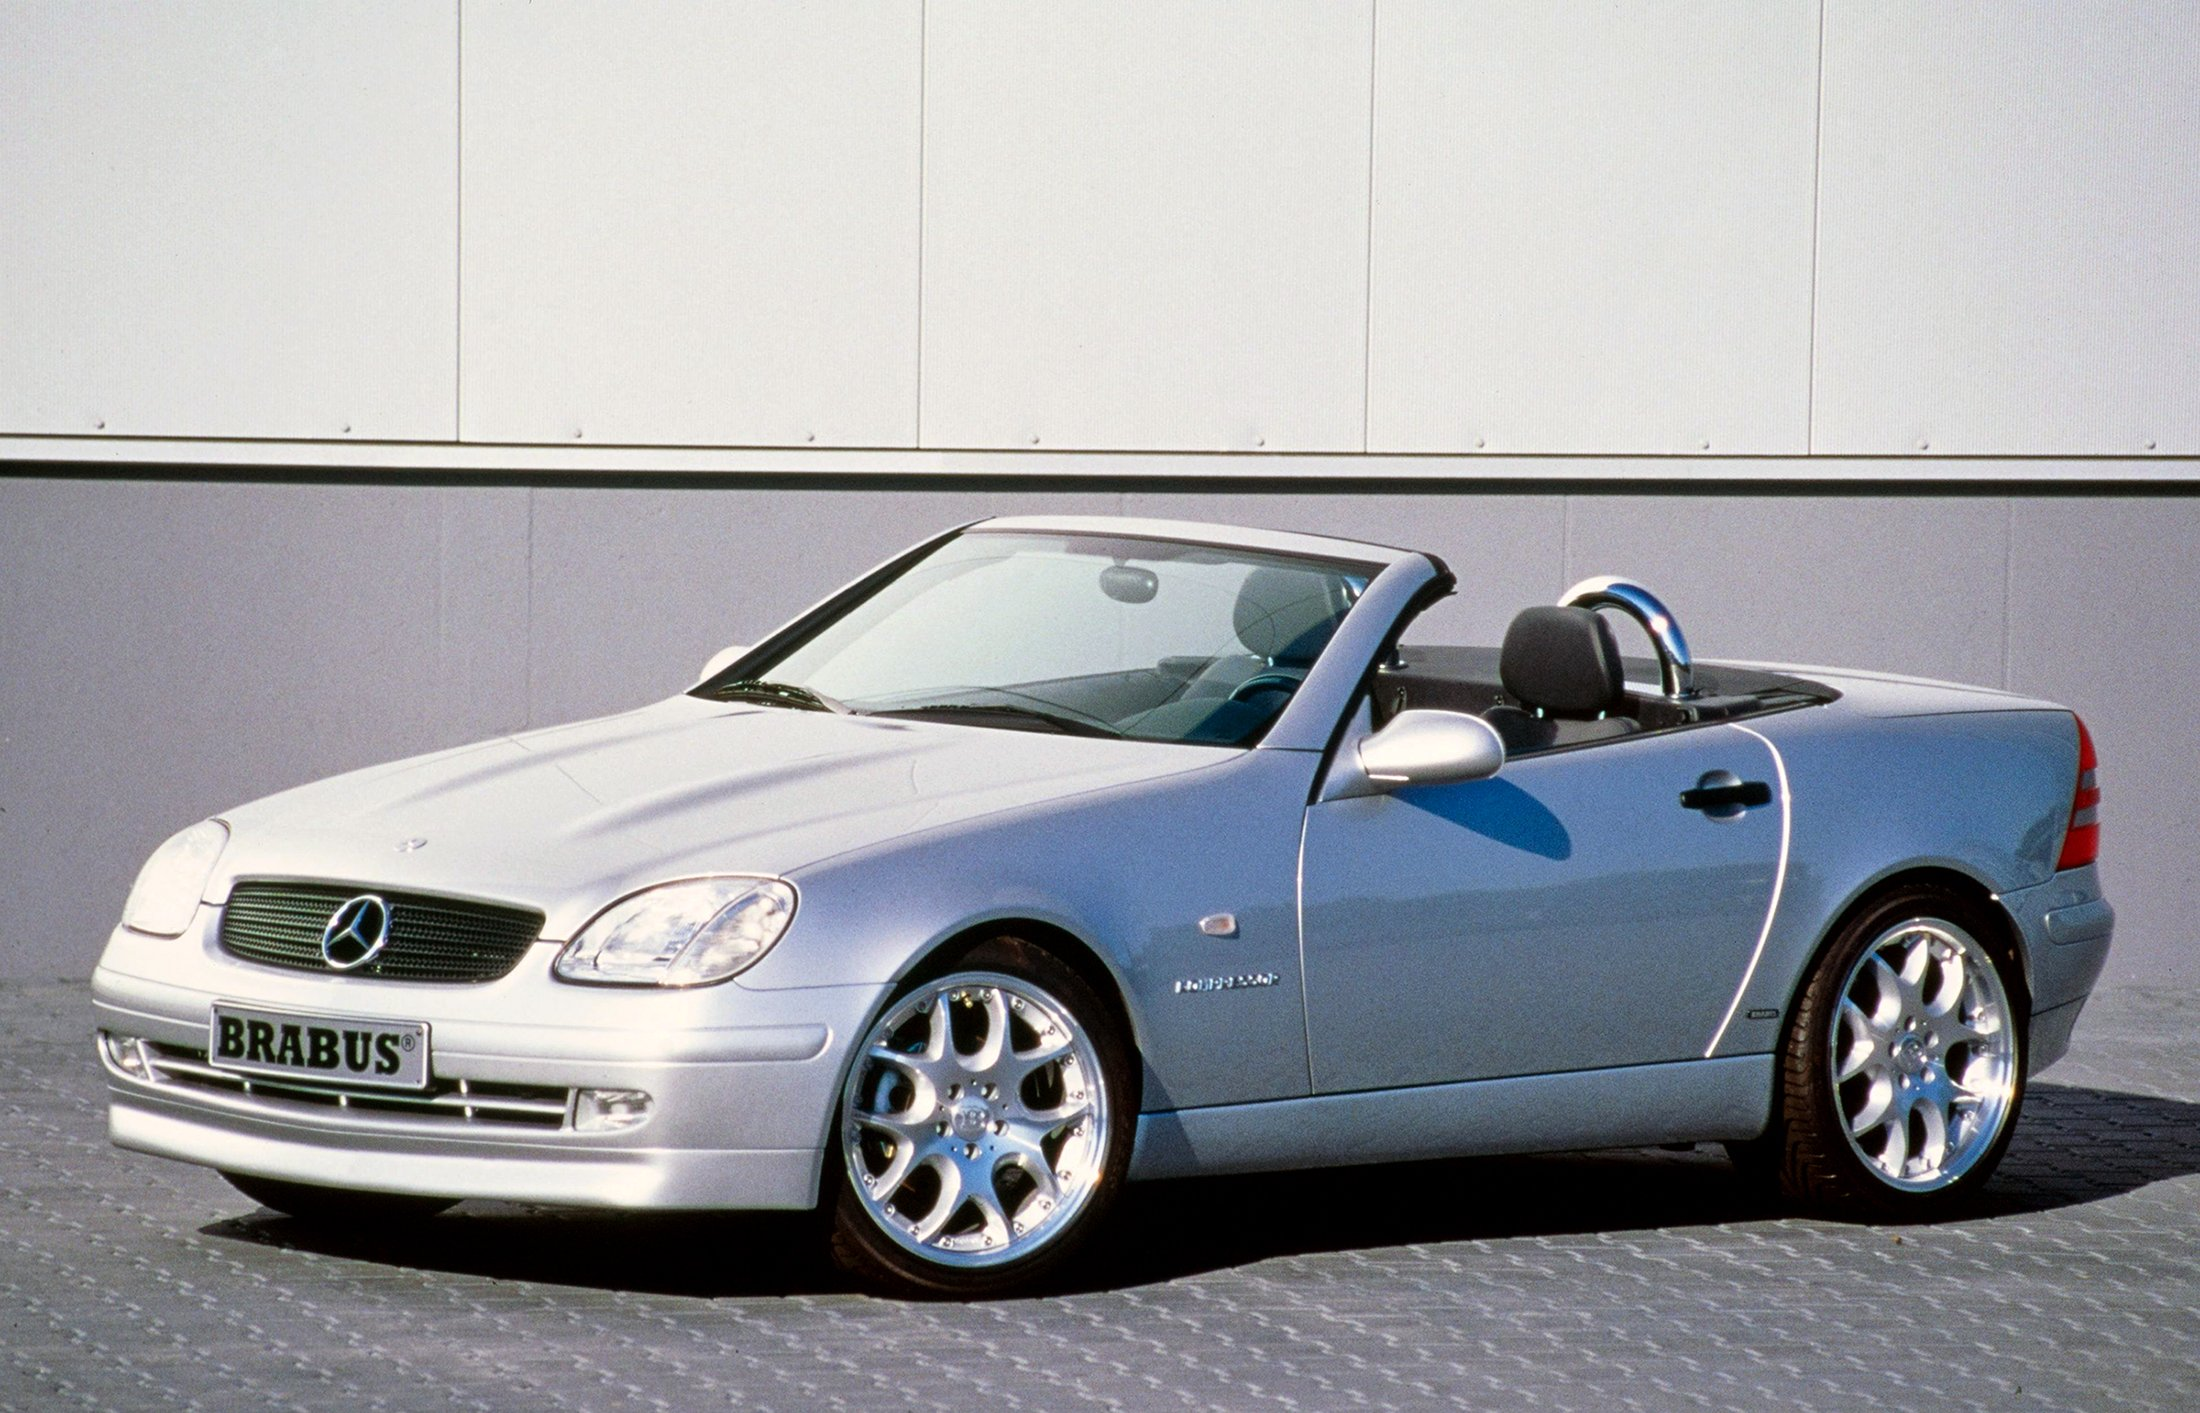 2000 brabus mercedes benz slk klasse r170 tuning wallpaper. Black Bedroom Furniture Sets. Home Design Ideas